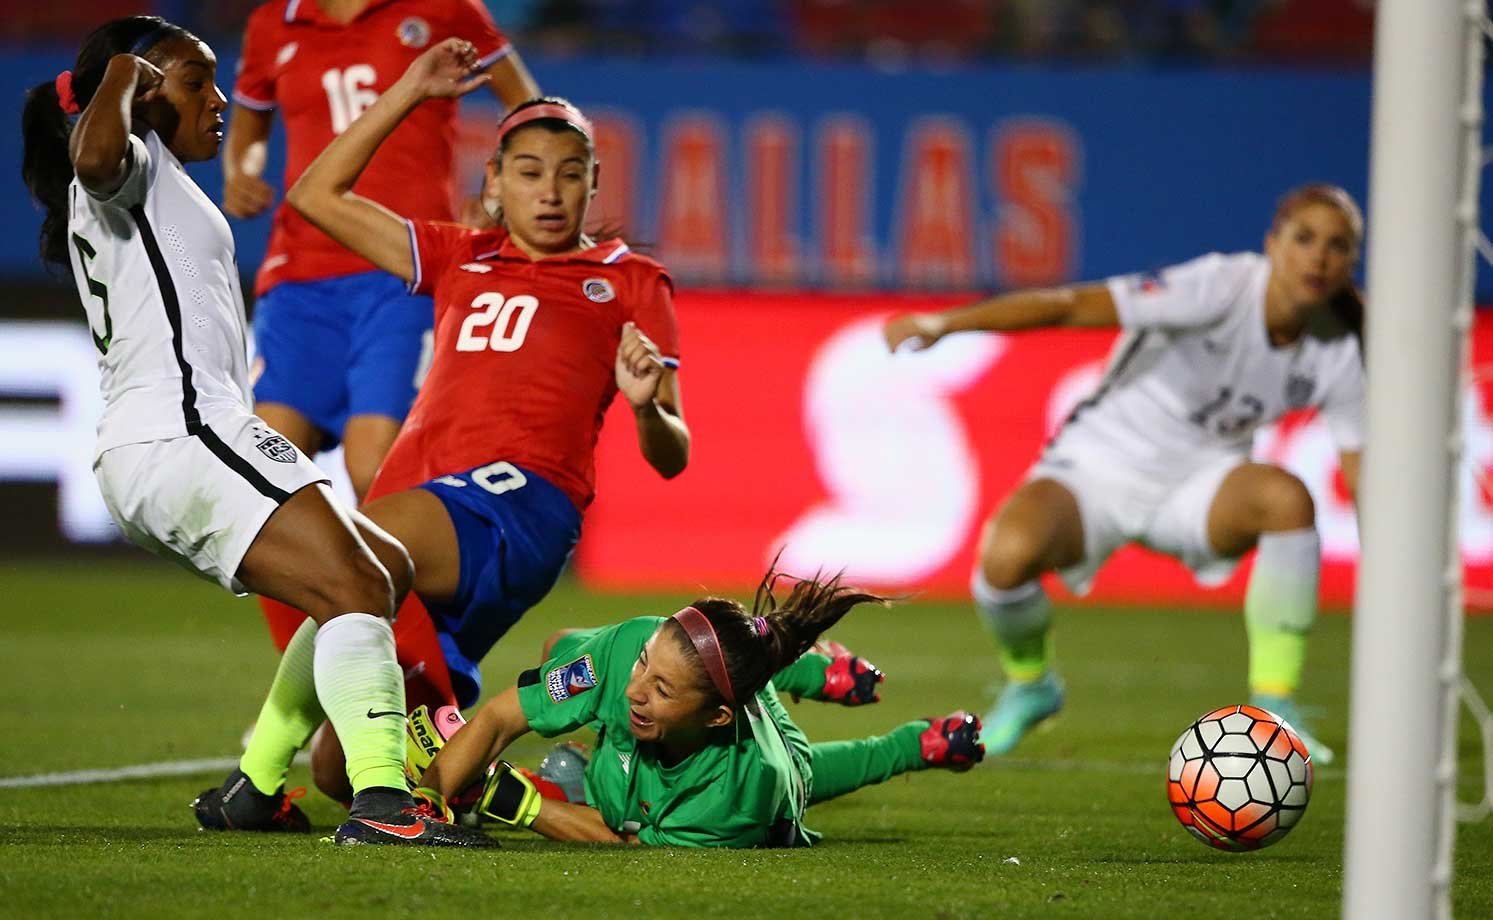 Crystal Dunn scores a goal past Dinnia Diaz of Costa Rica during CONCACAF Olympic Qualifying in Frisco, Texas.